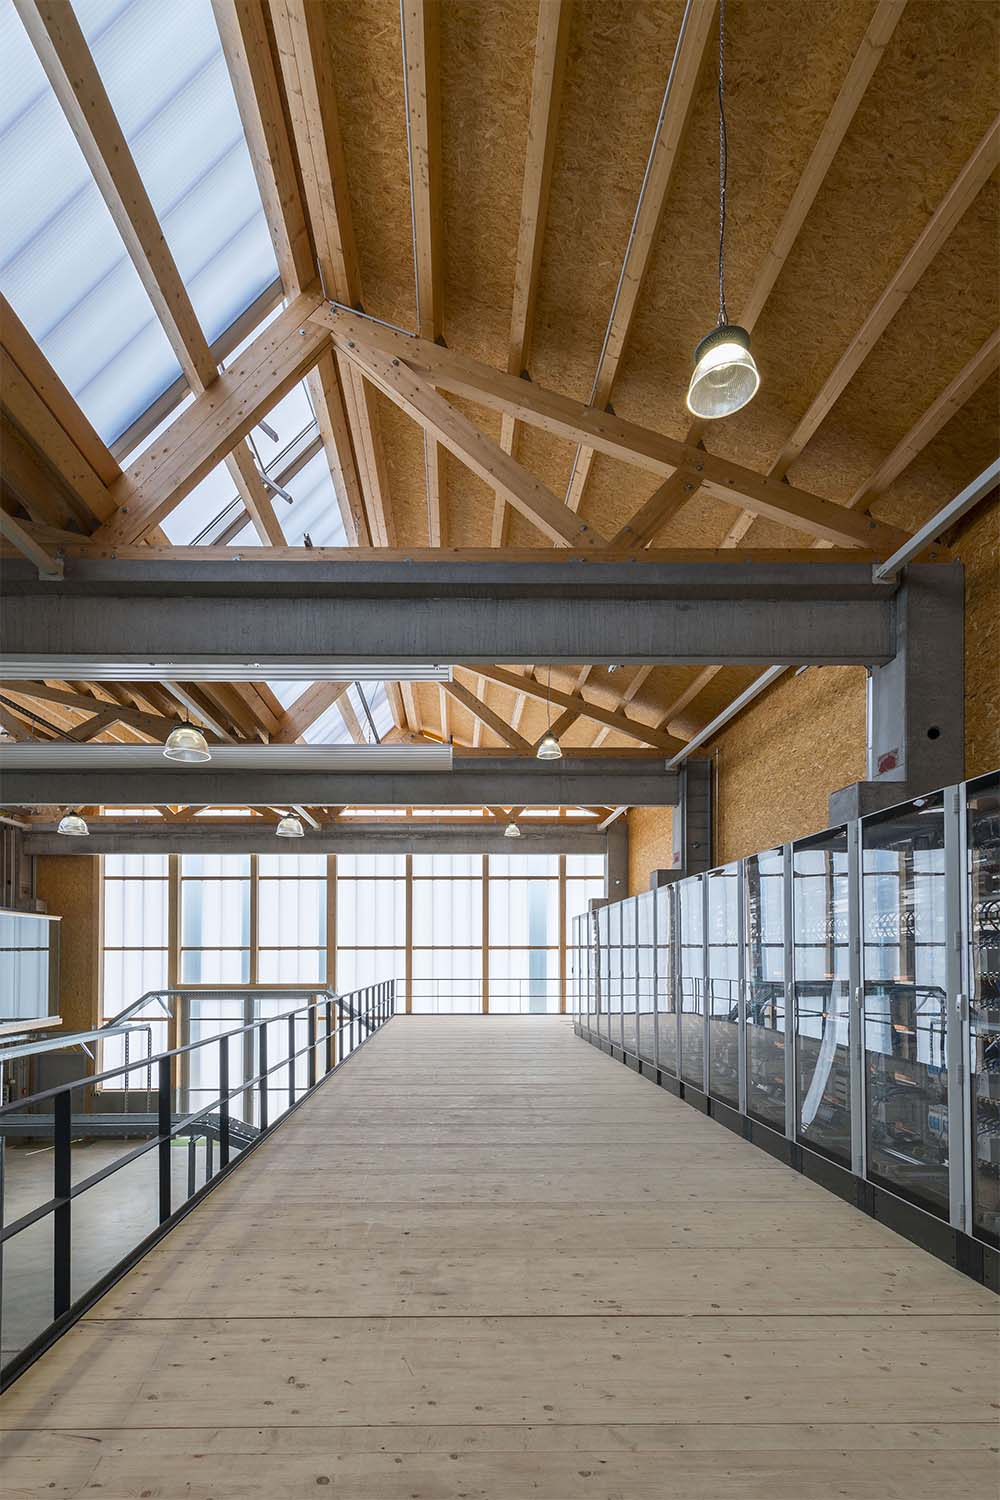 The hall is characterized by the wooden construction of the sawtooth roof David Matthiessen